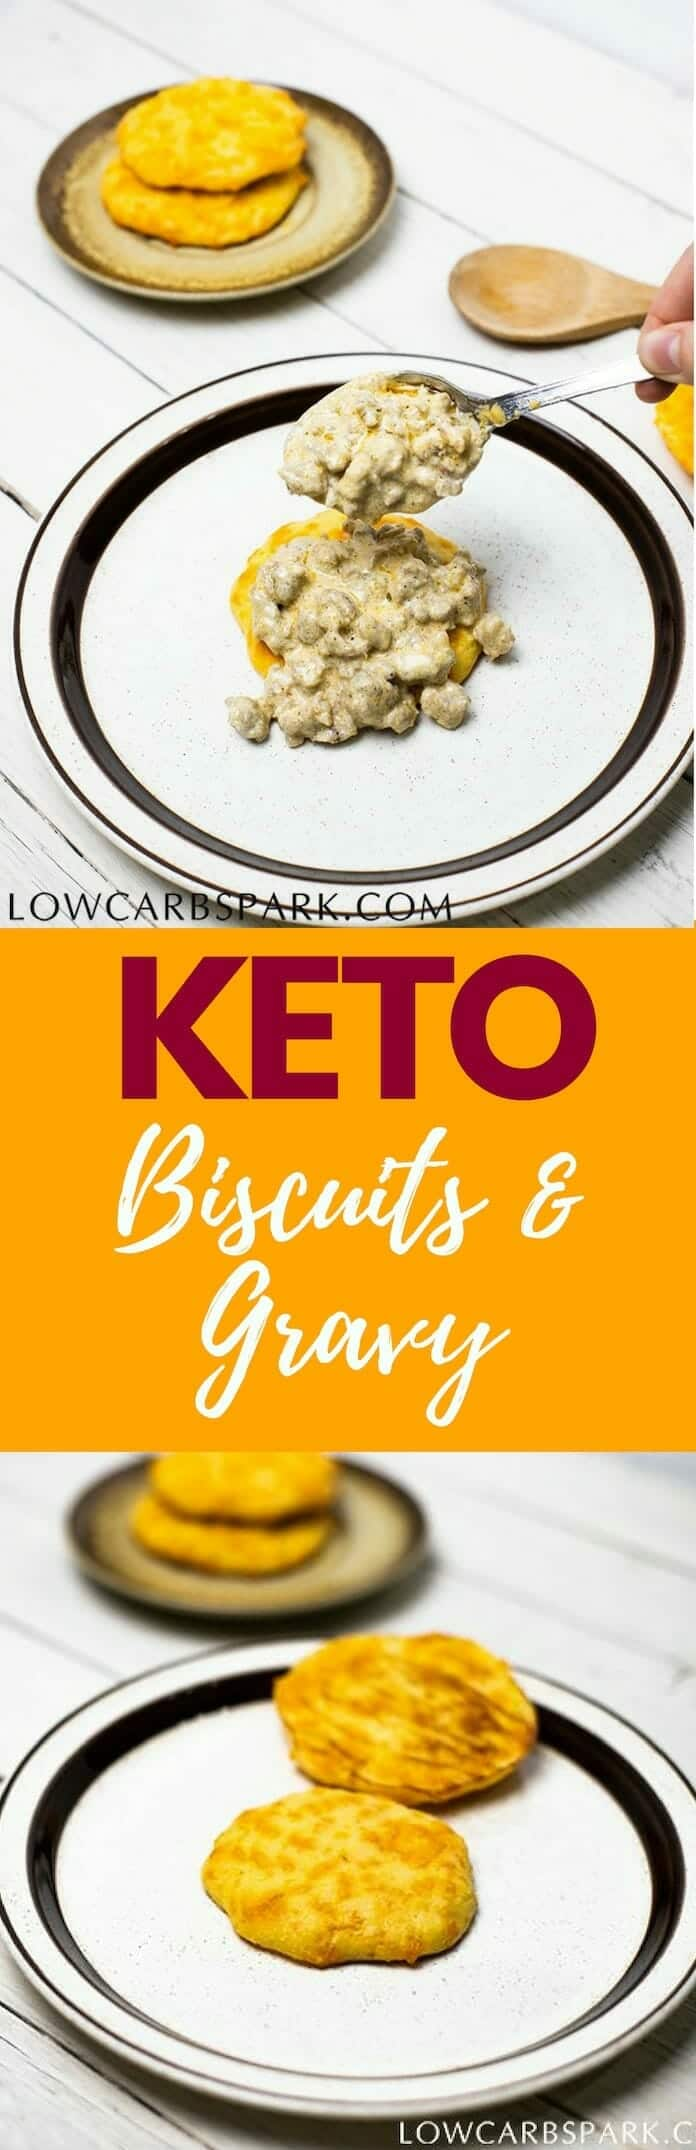 A delicious keto breakfast recipe: keto biscuits and keto gravy. Learn how to make keto biscuits from scratch and delicious sausage gravy. Each serving has 4 net carbs and tons of fat to keep you full for longer. lowcarbspark.com | via @lowcarbspark #ketorecipes #ketogravy #ketobiscuits #biscuits #lowcarb